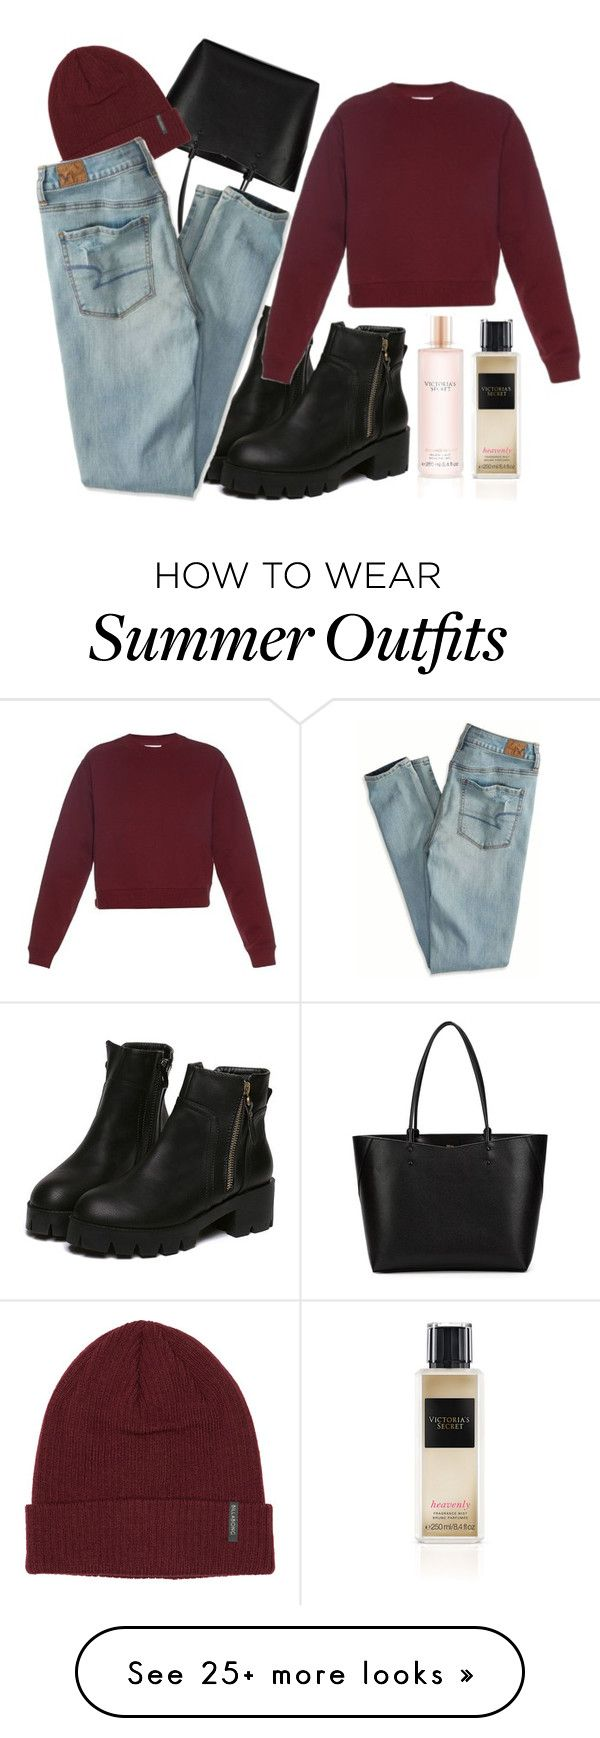 """"" by mashka89 on Polyvore featuring Valextra, Billabong, American Eagle Outfitters, Acne Studios and Victoria's Secret"